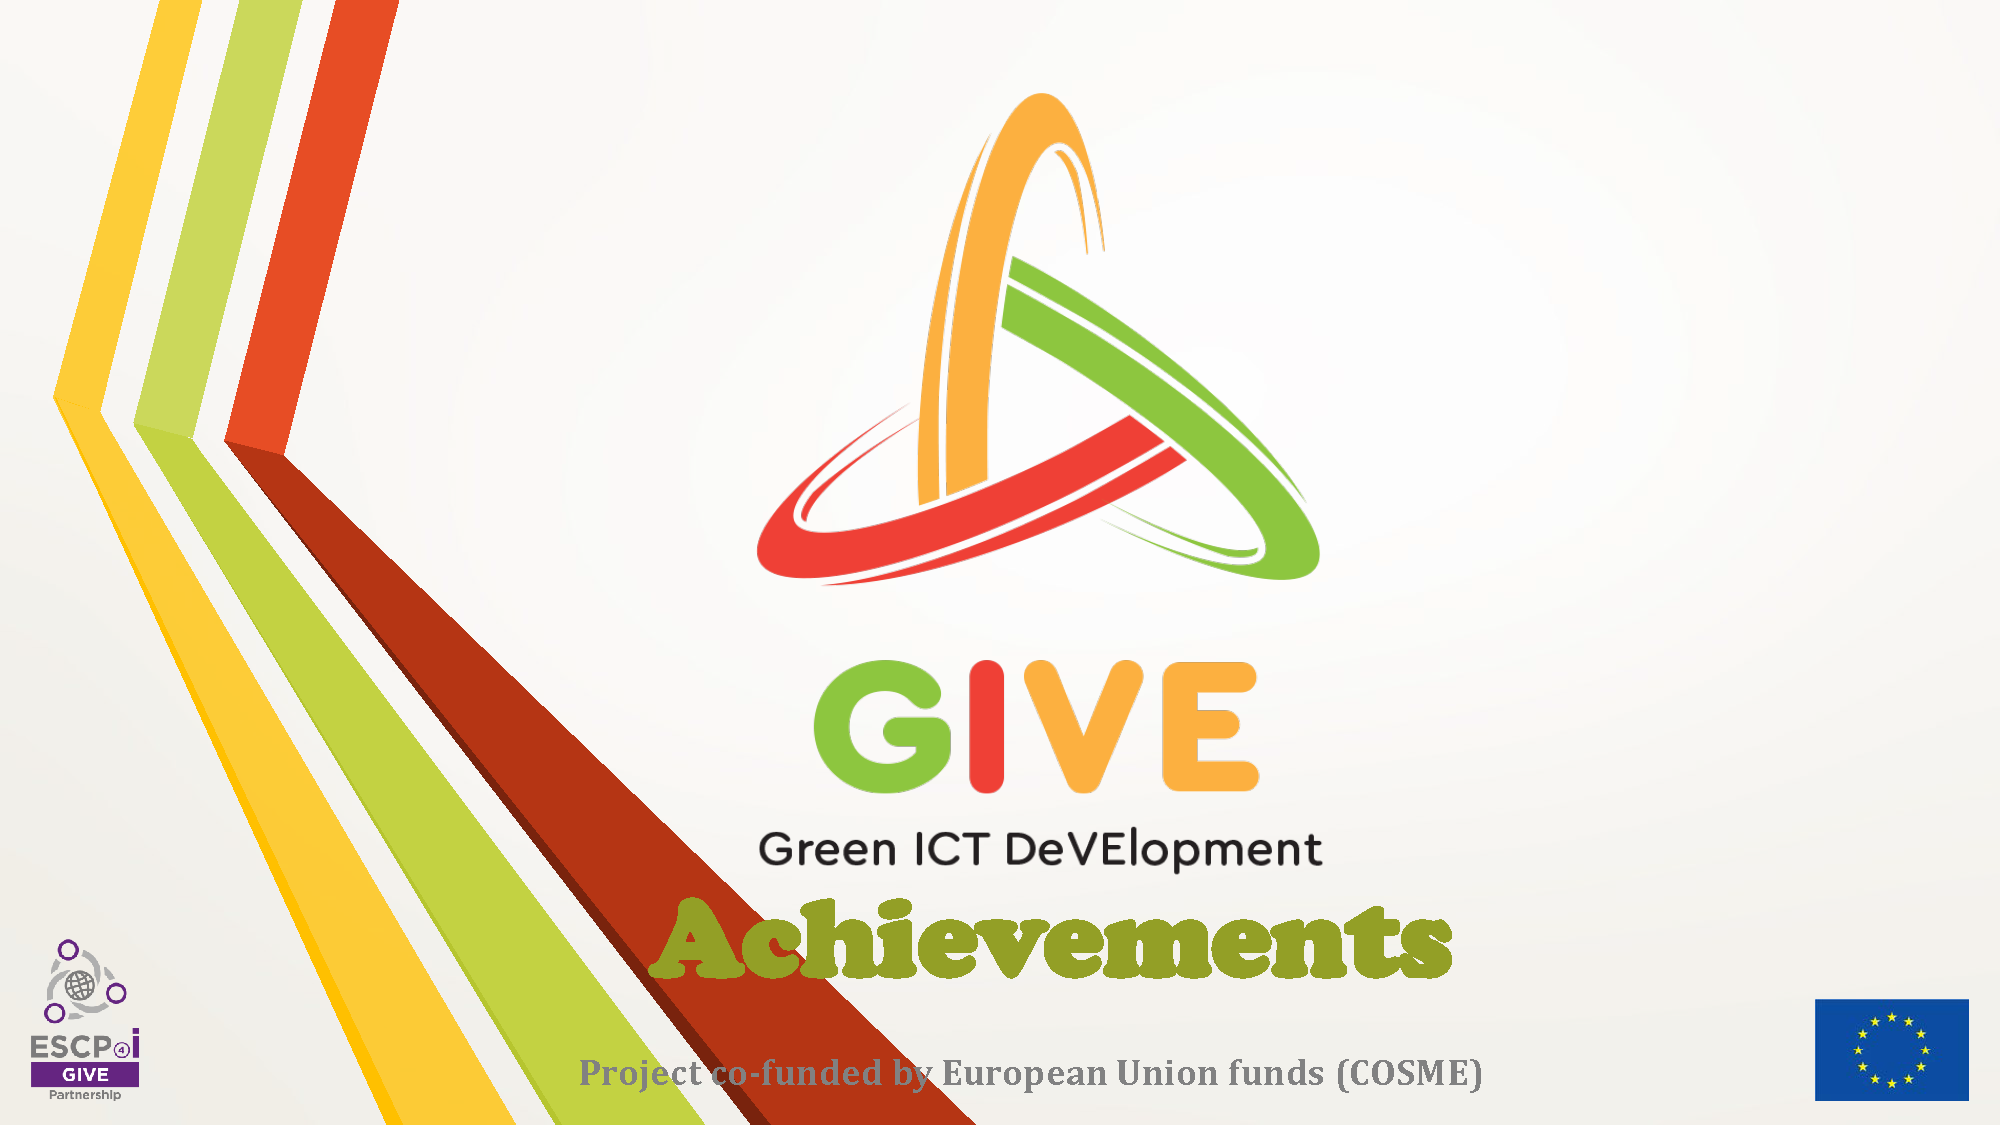 give-achivements_page_1png